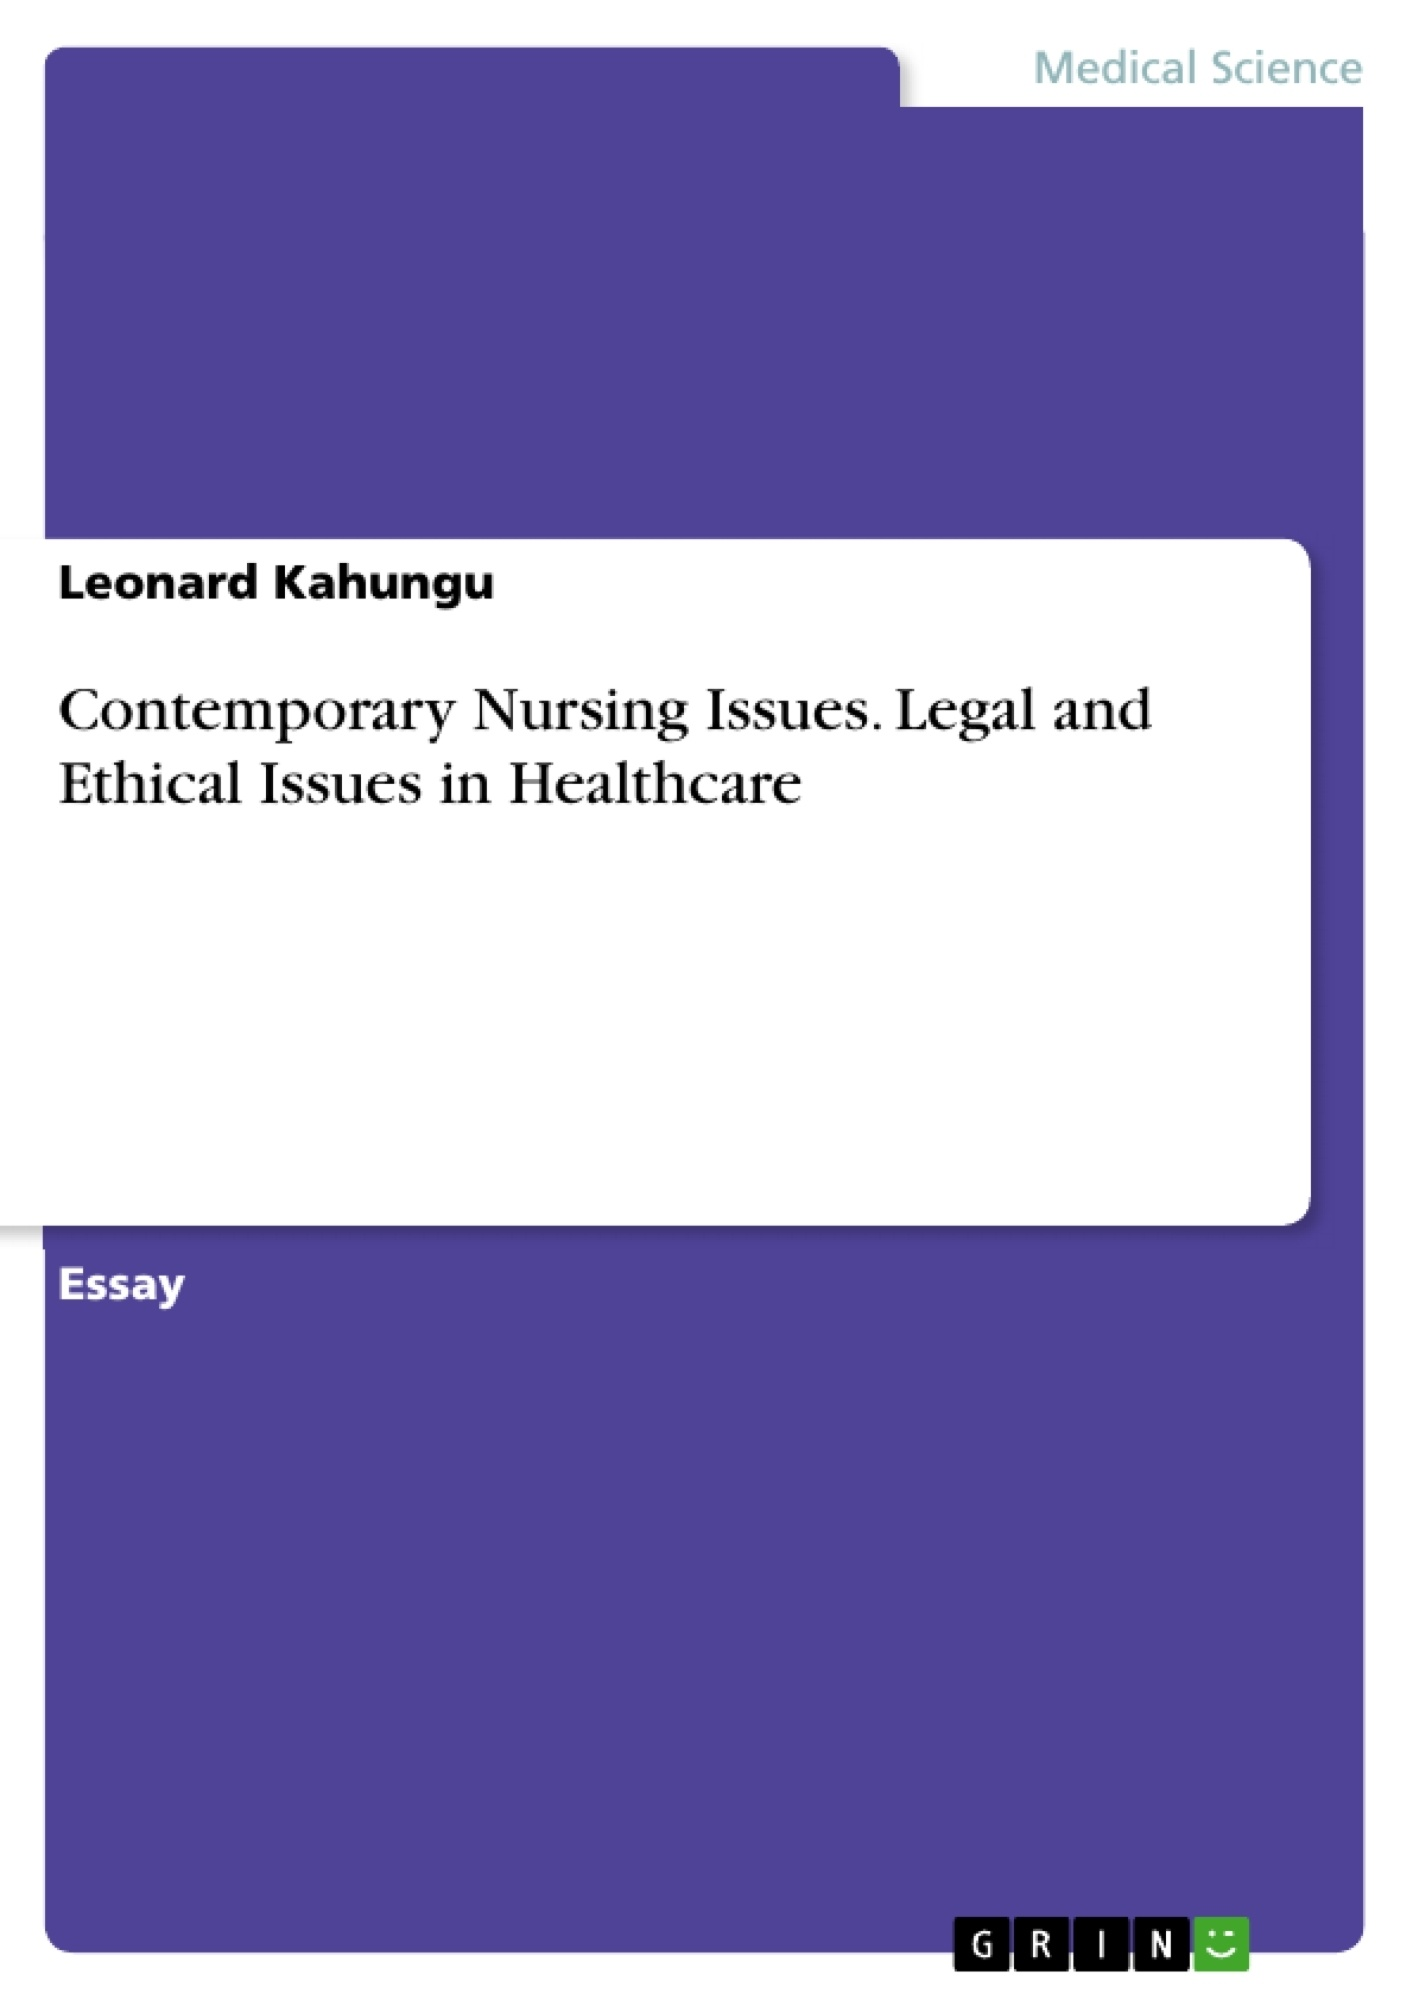 essay on ethical issues in healthcare